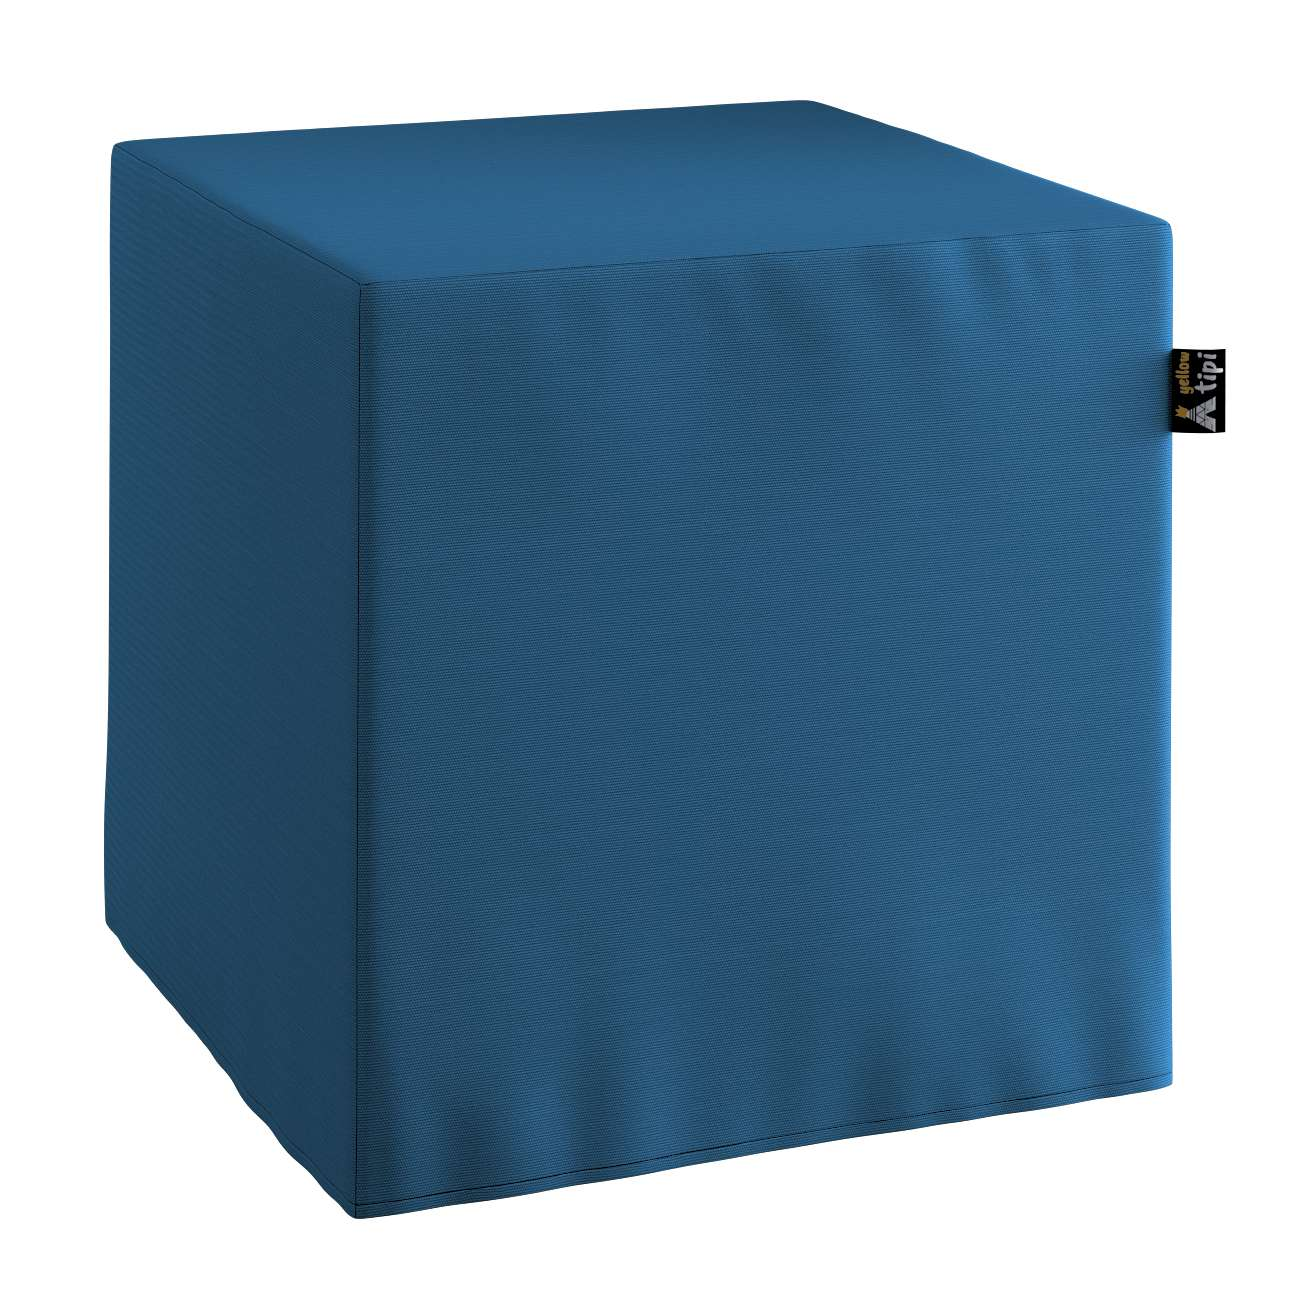 Nano cube pouf in collection Cotton Story, fabric: 702-30